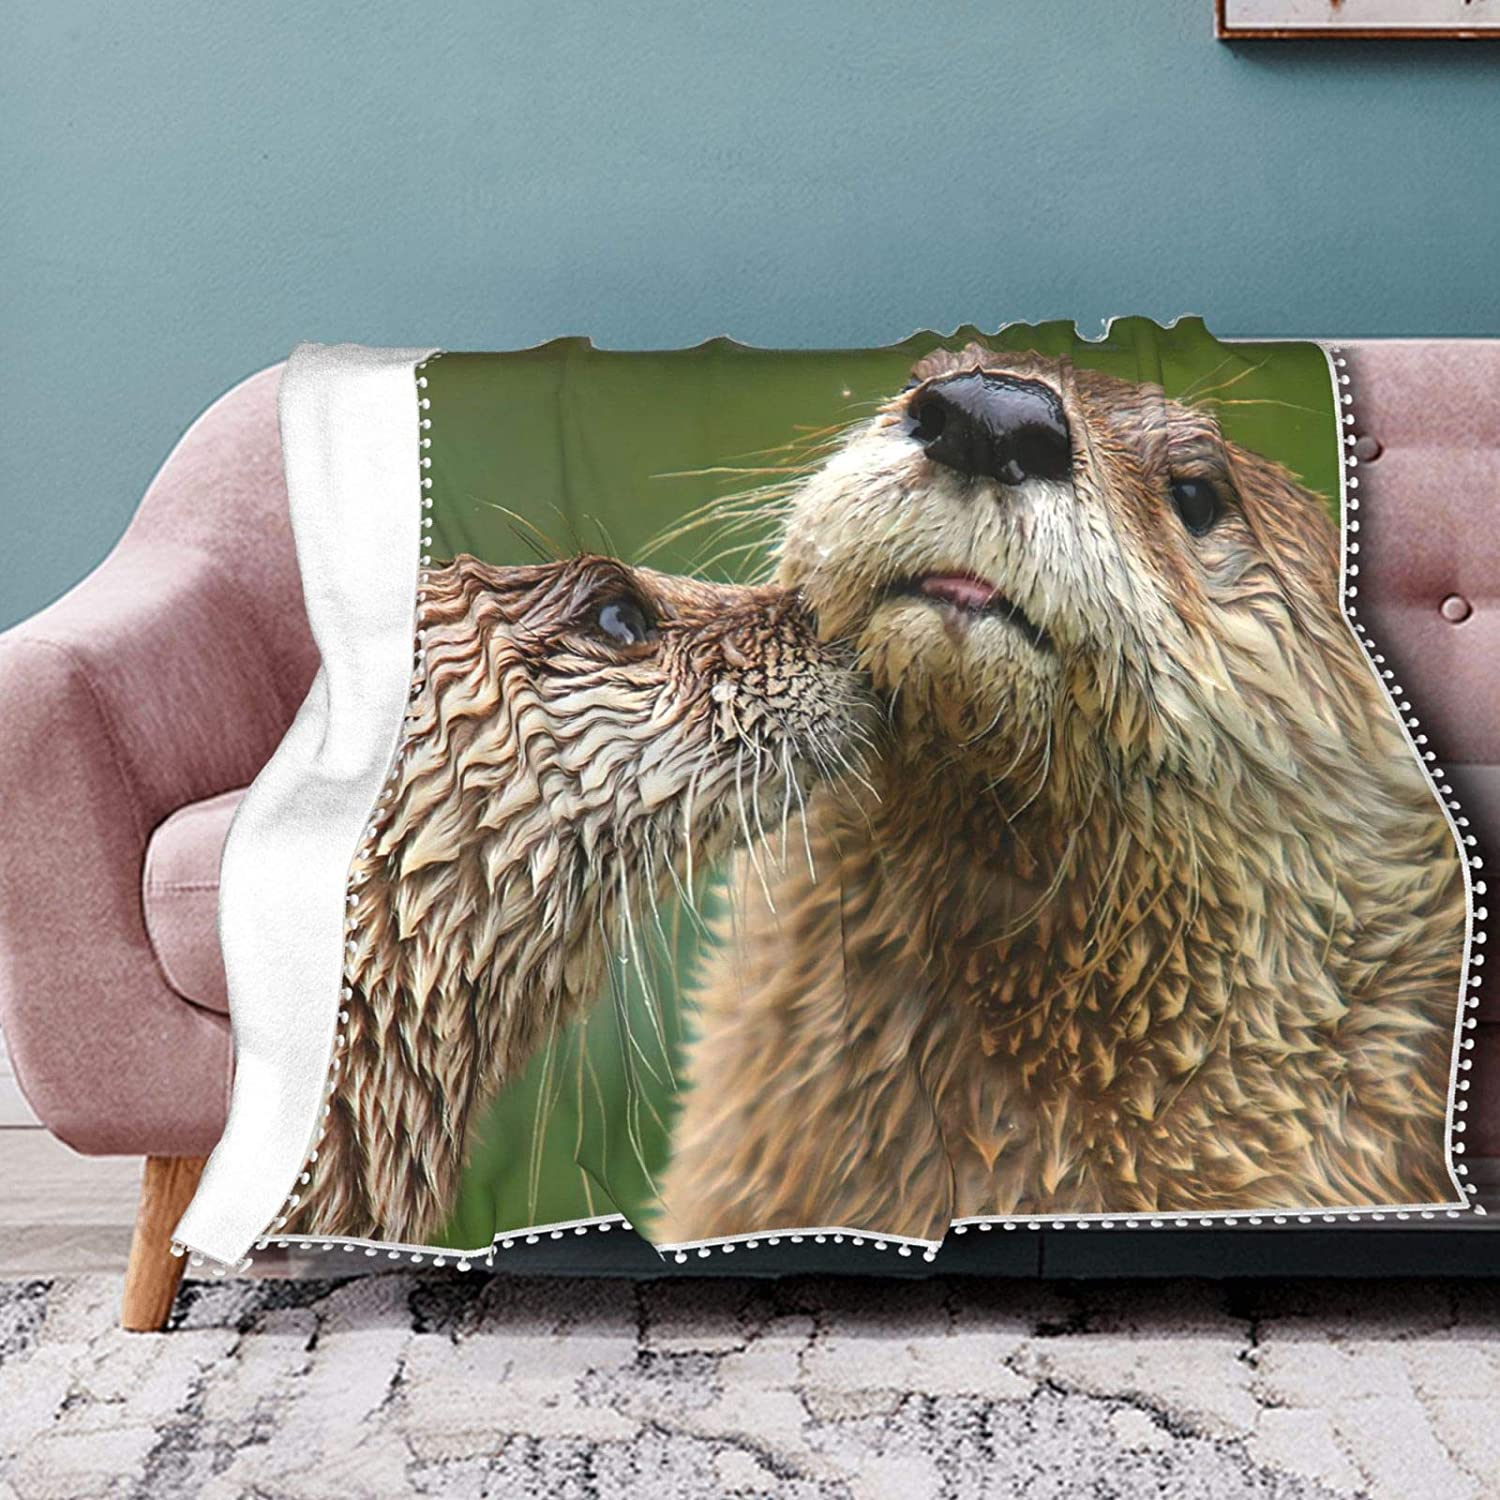 Sea Otters Love Fleece Max 88% OFF Blanket with Co Summer Online limited product Fringe Air Pompom